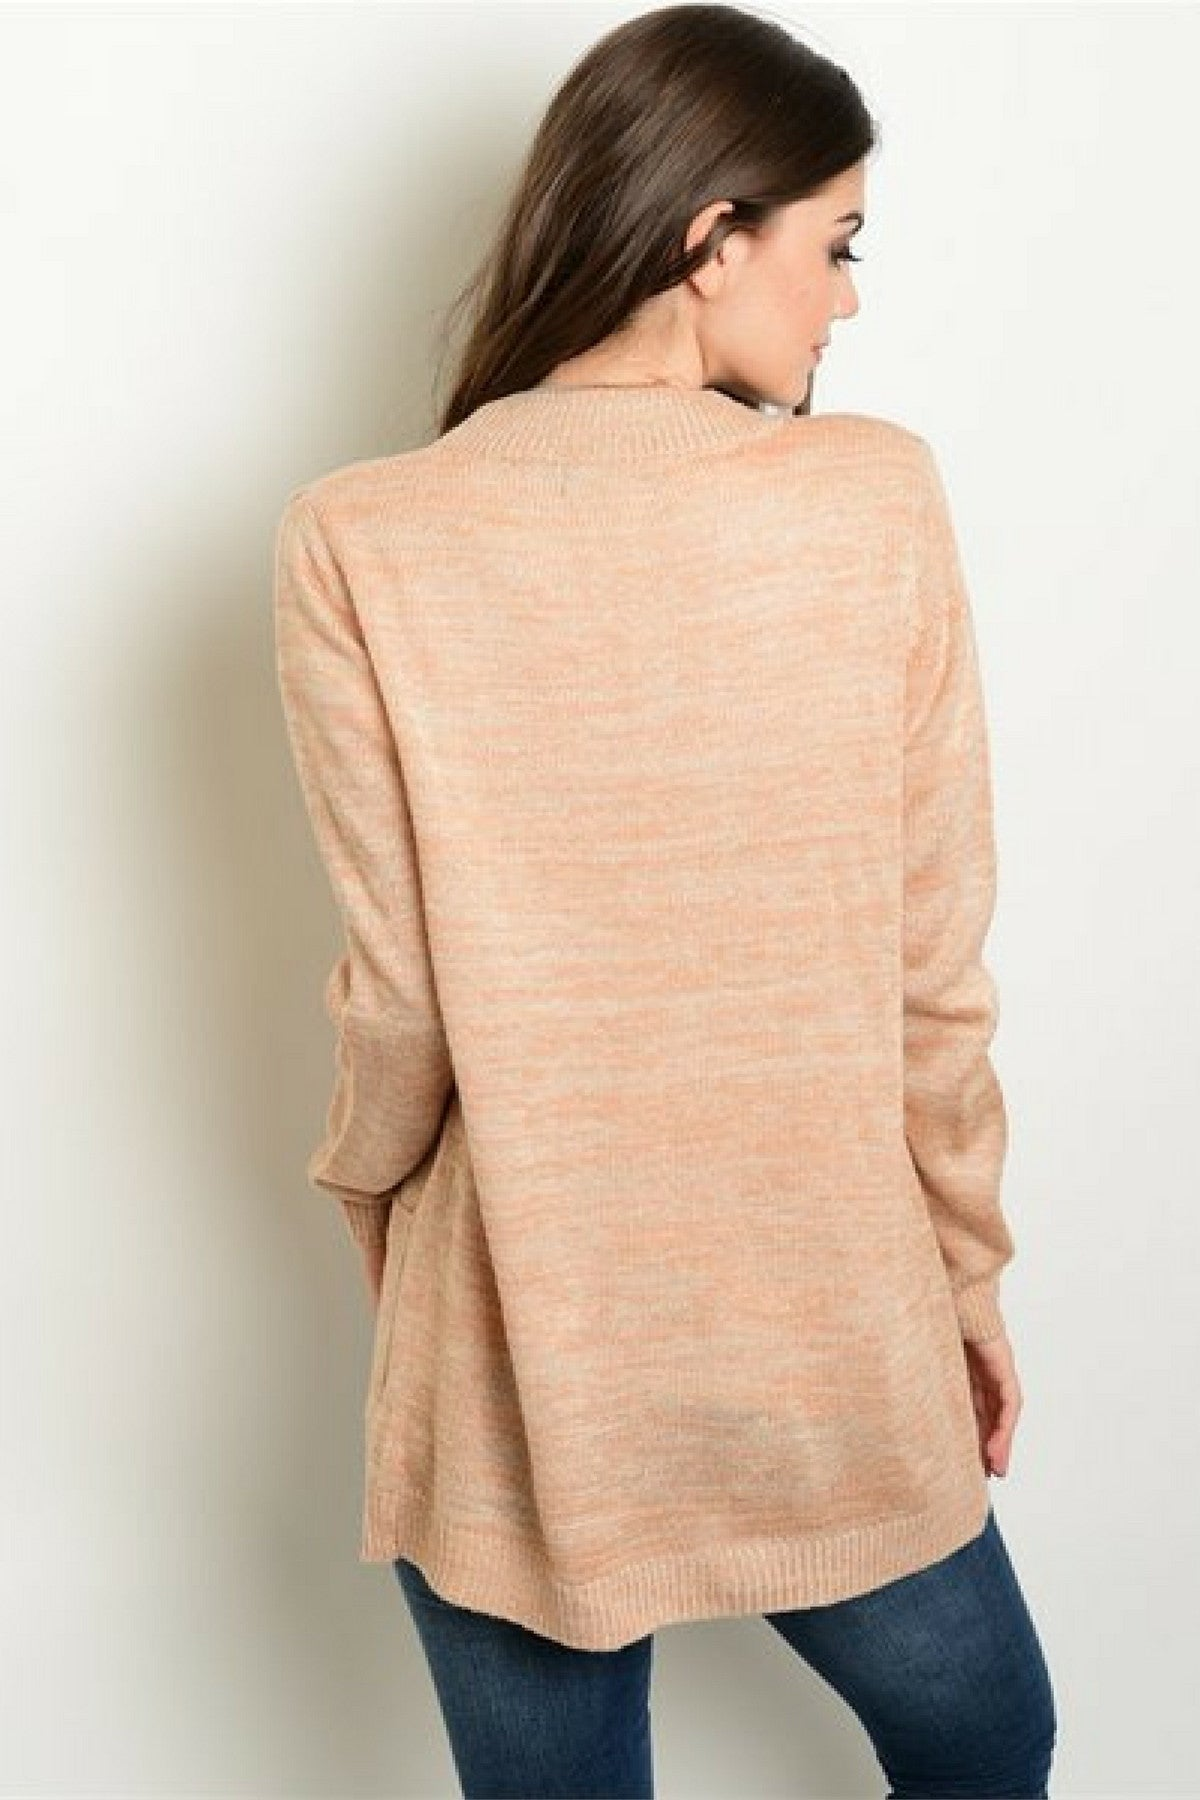 Caramel Blush Knit Cardigan - Leather and Sequins - 2